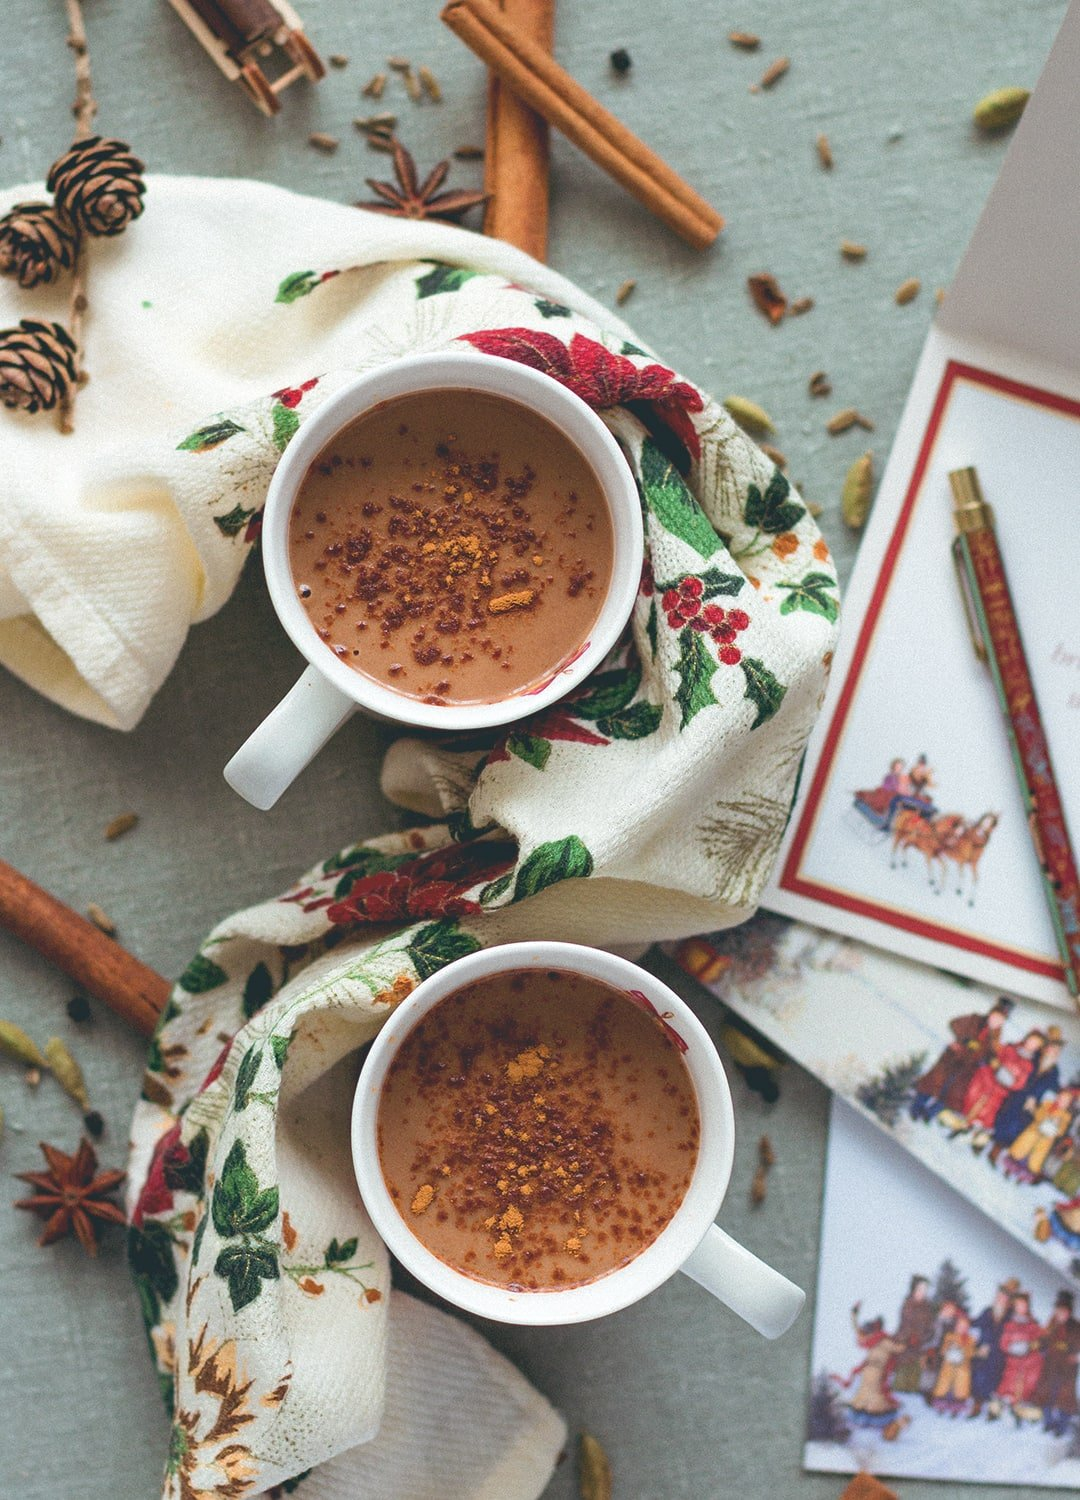 12 Christmas Recipes You Need to Make This Year: Almond Chai Hot Chocolate - incredibly creamy, delicious, and sweet. Almond milk, cacao, almond butter, tahini, homemade chai spice mix, sea salt, and maple syrup. So yummy! You'll love this hot chocolate, it's so easy to make. (vegan, GF) | thehealthfulideas.com